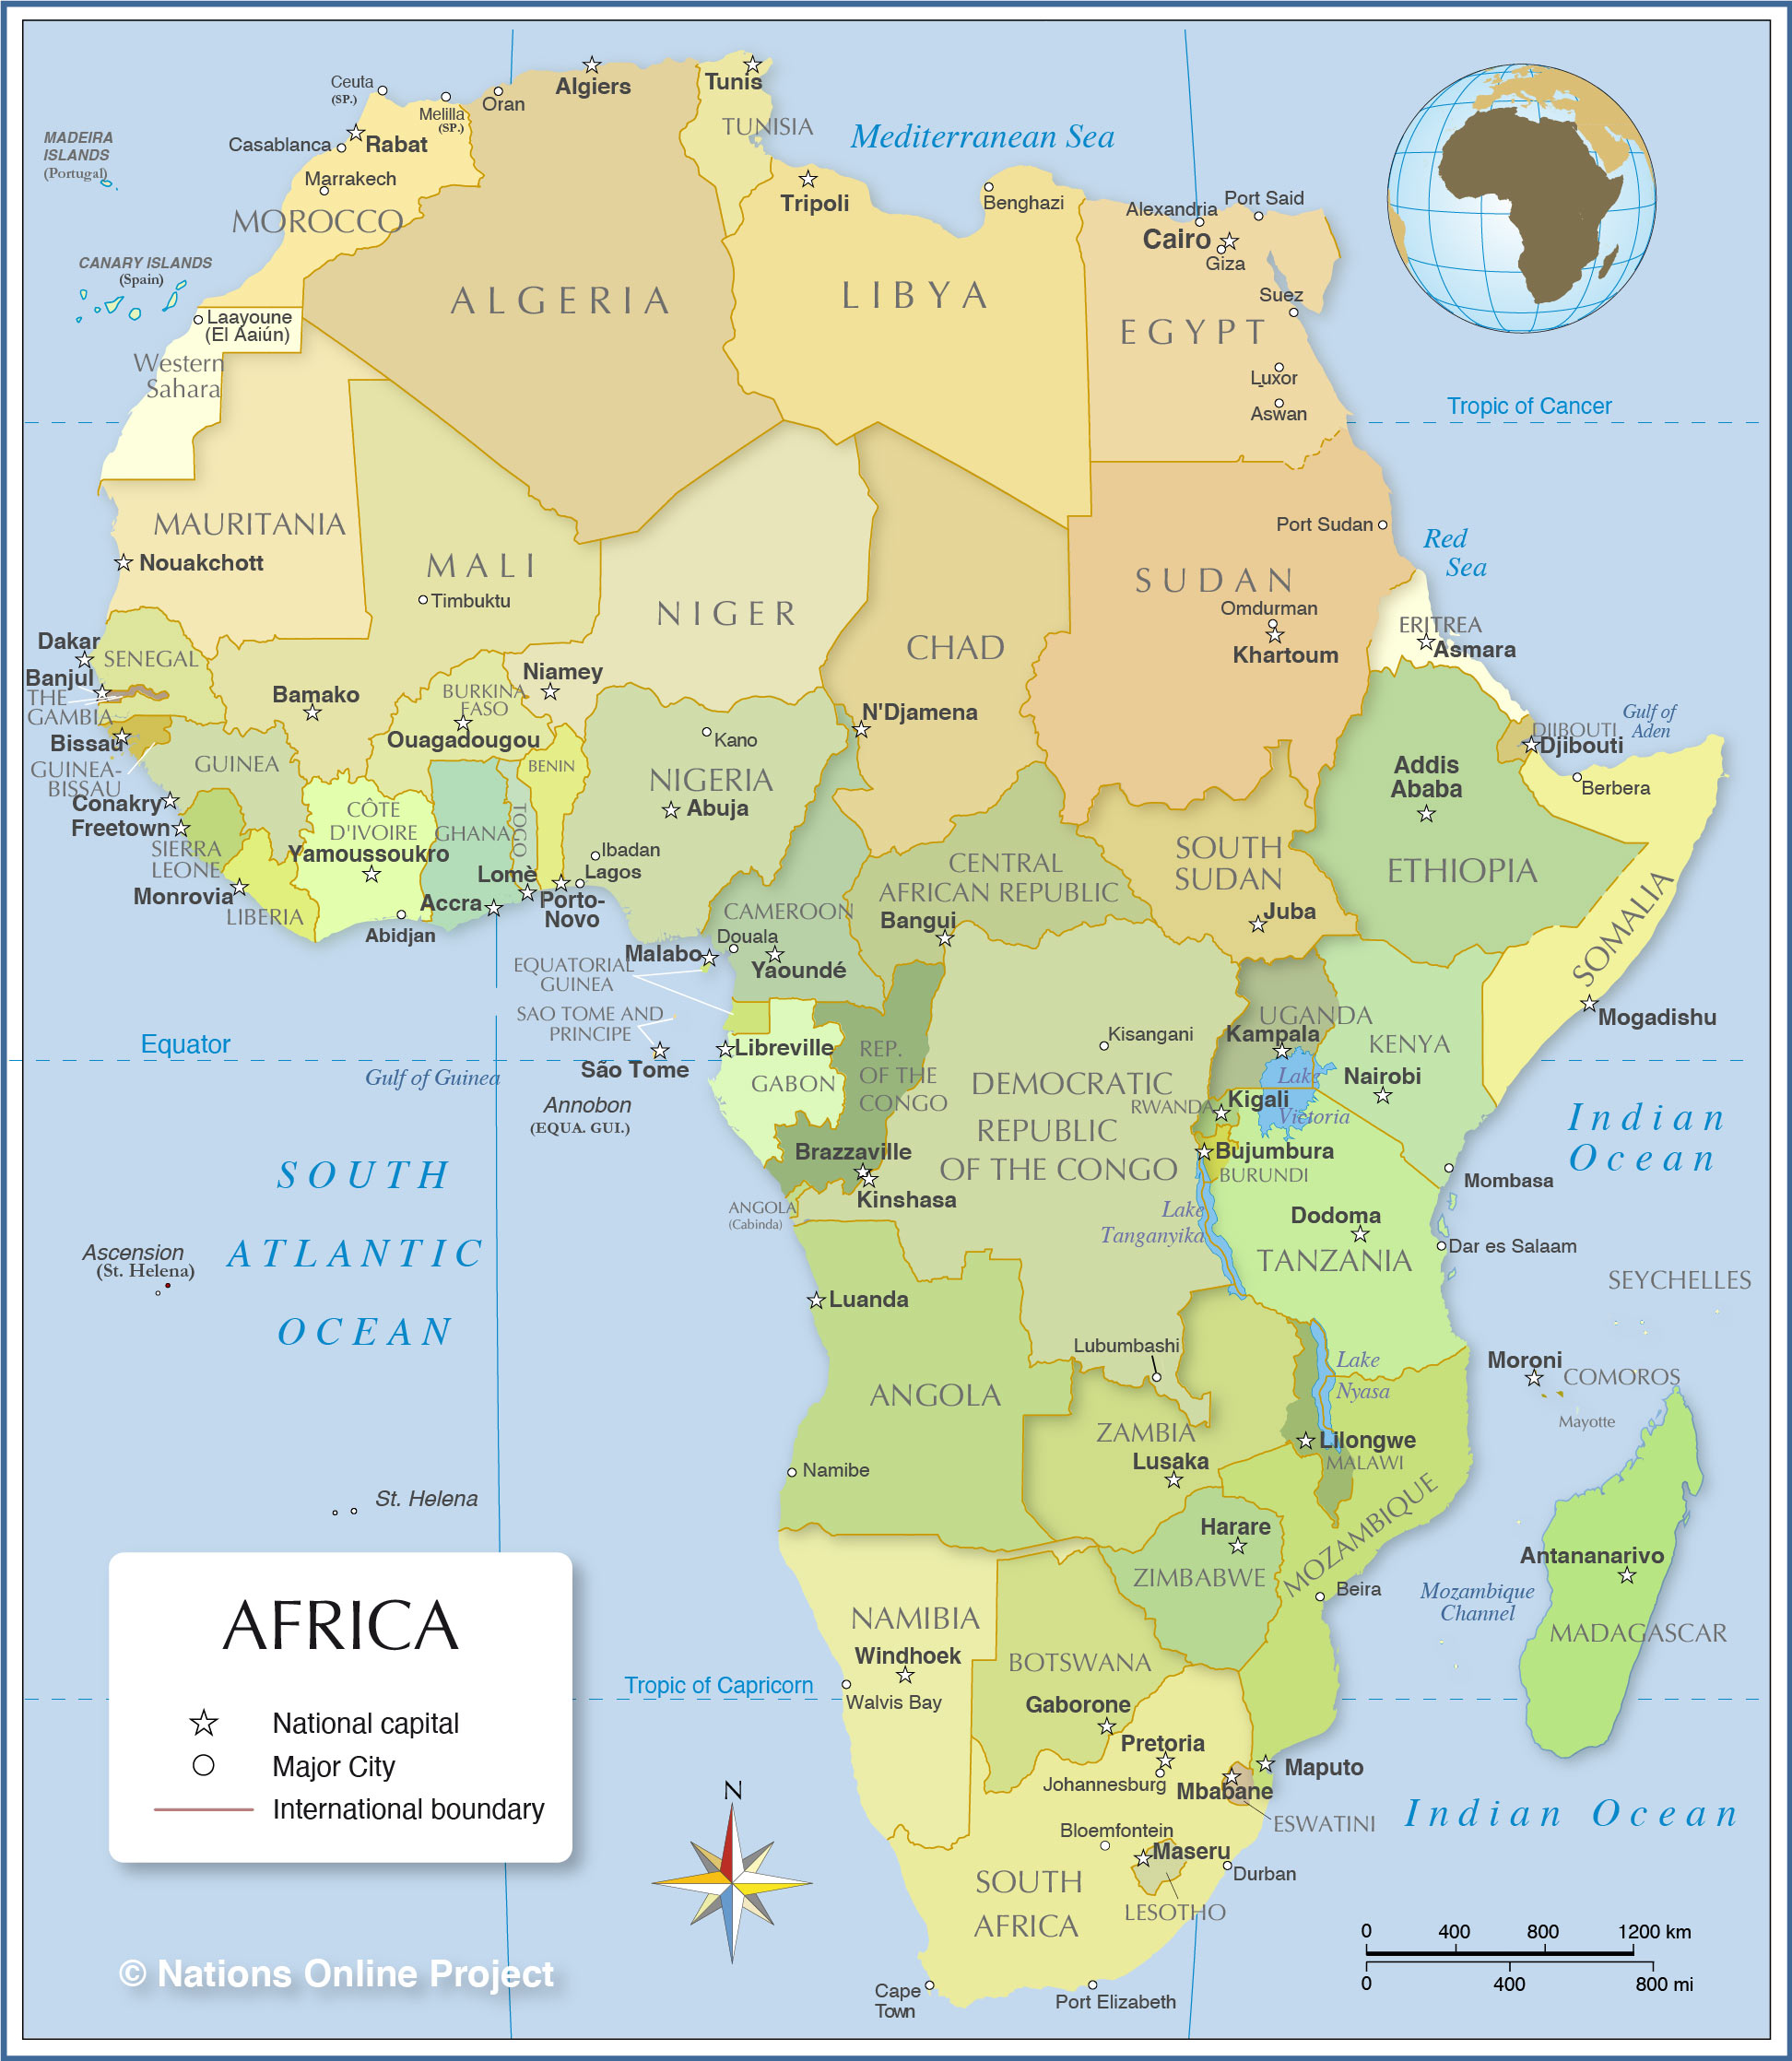 Political Map of Africa - Nations Online Project on